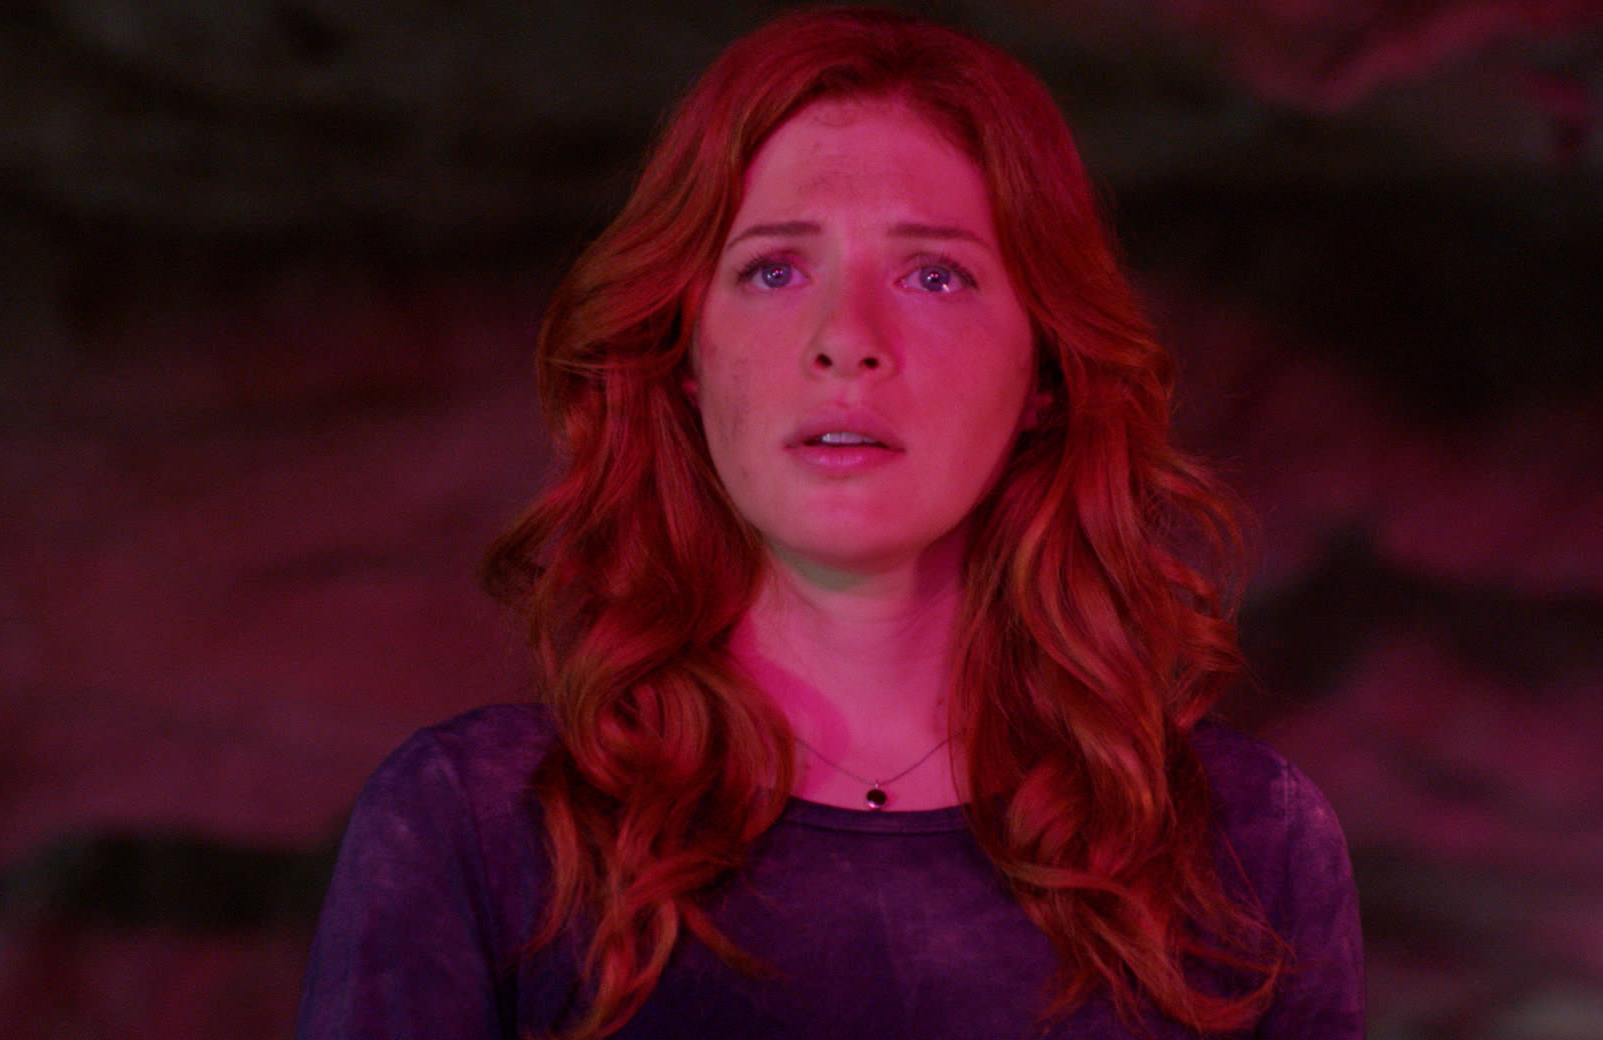 4. Rachelle Lefevre speaks fluent French.